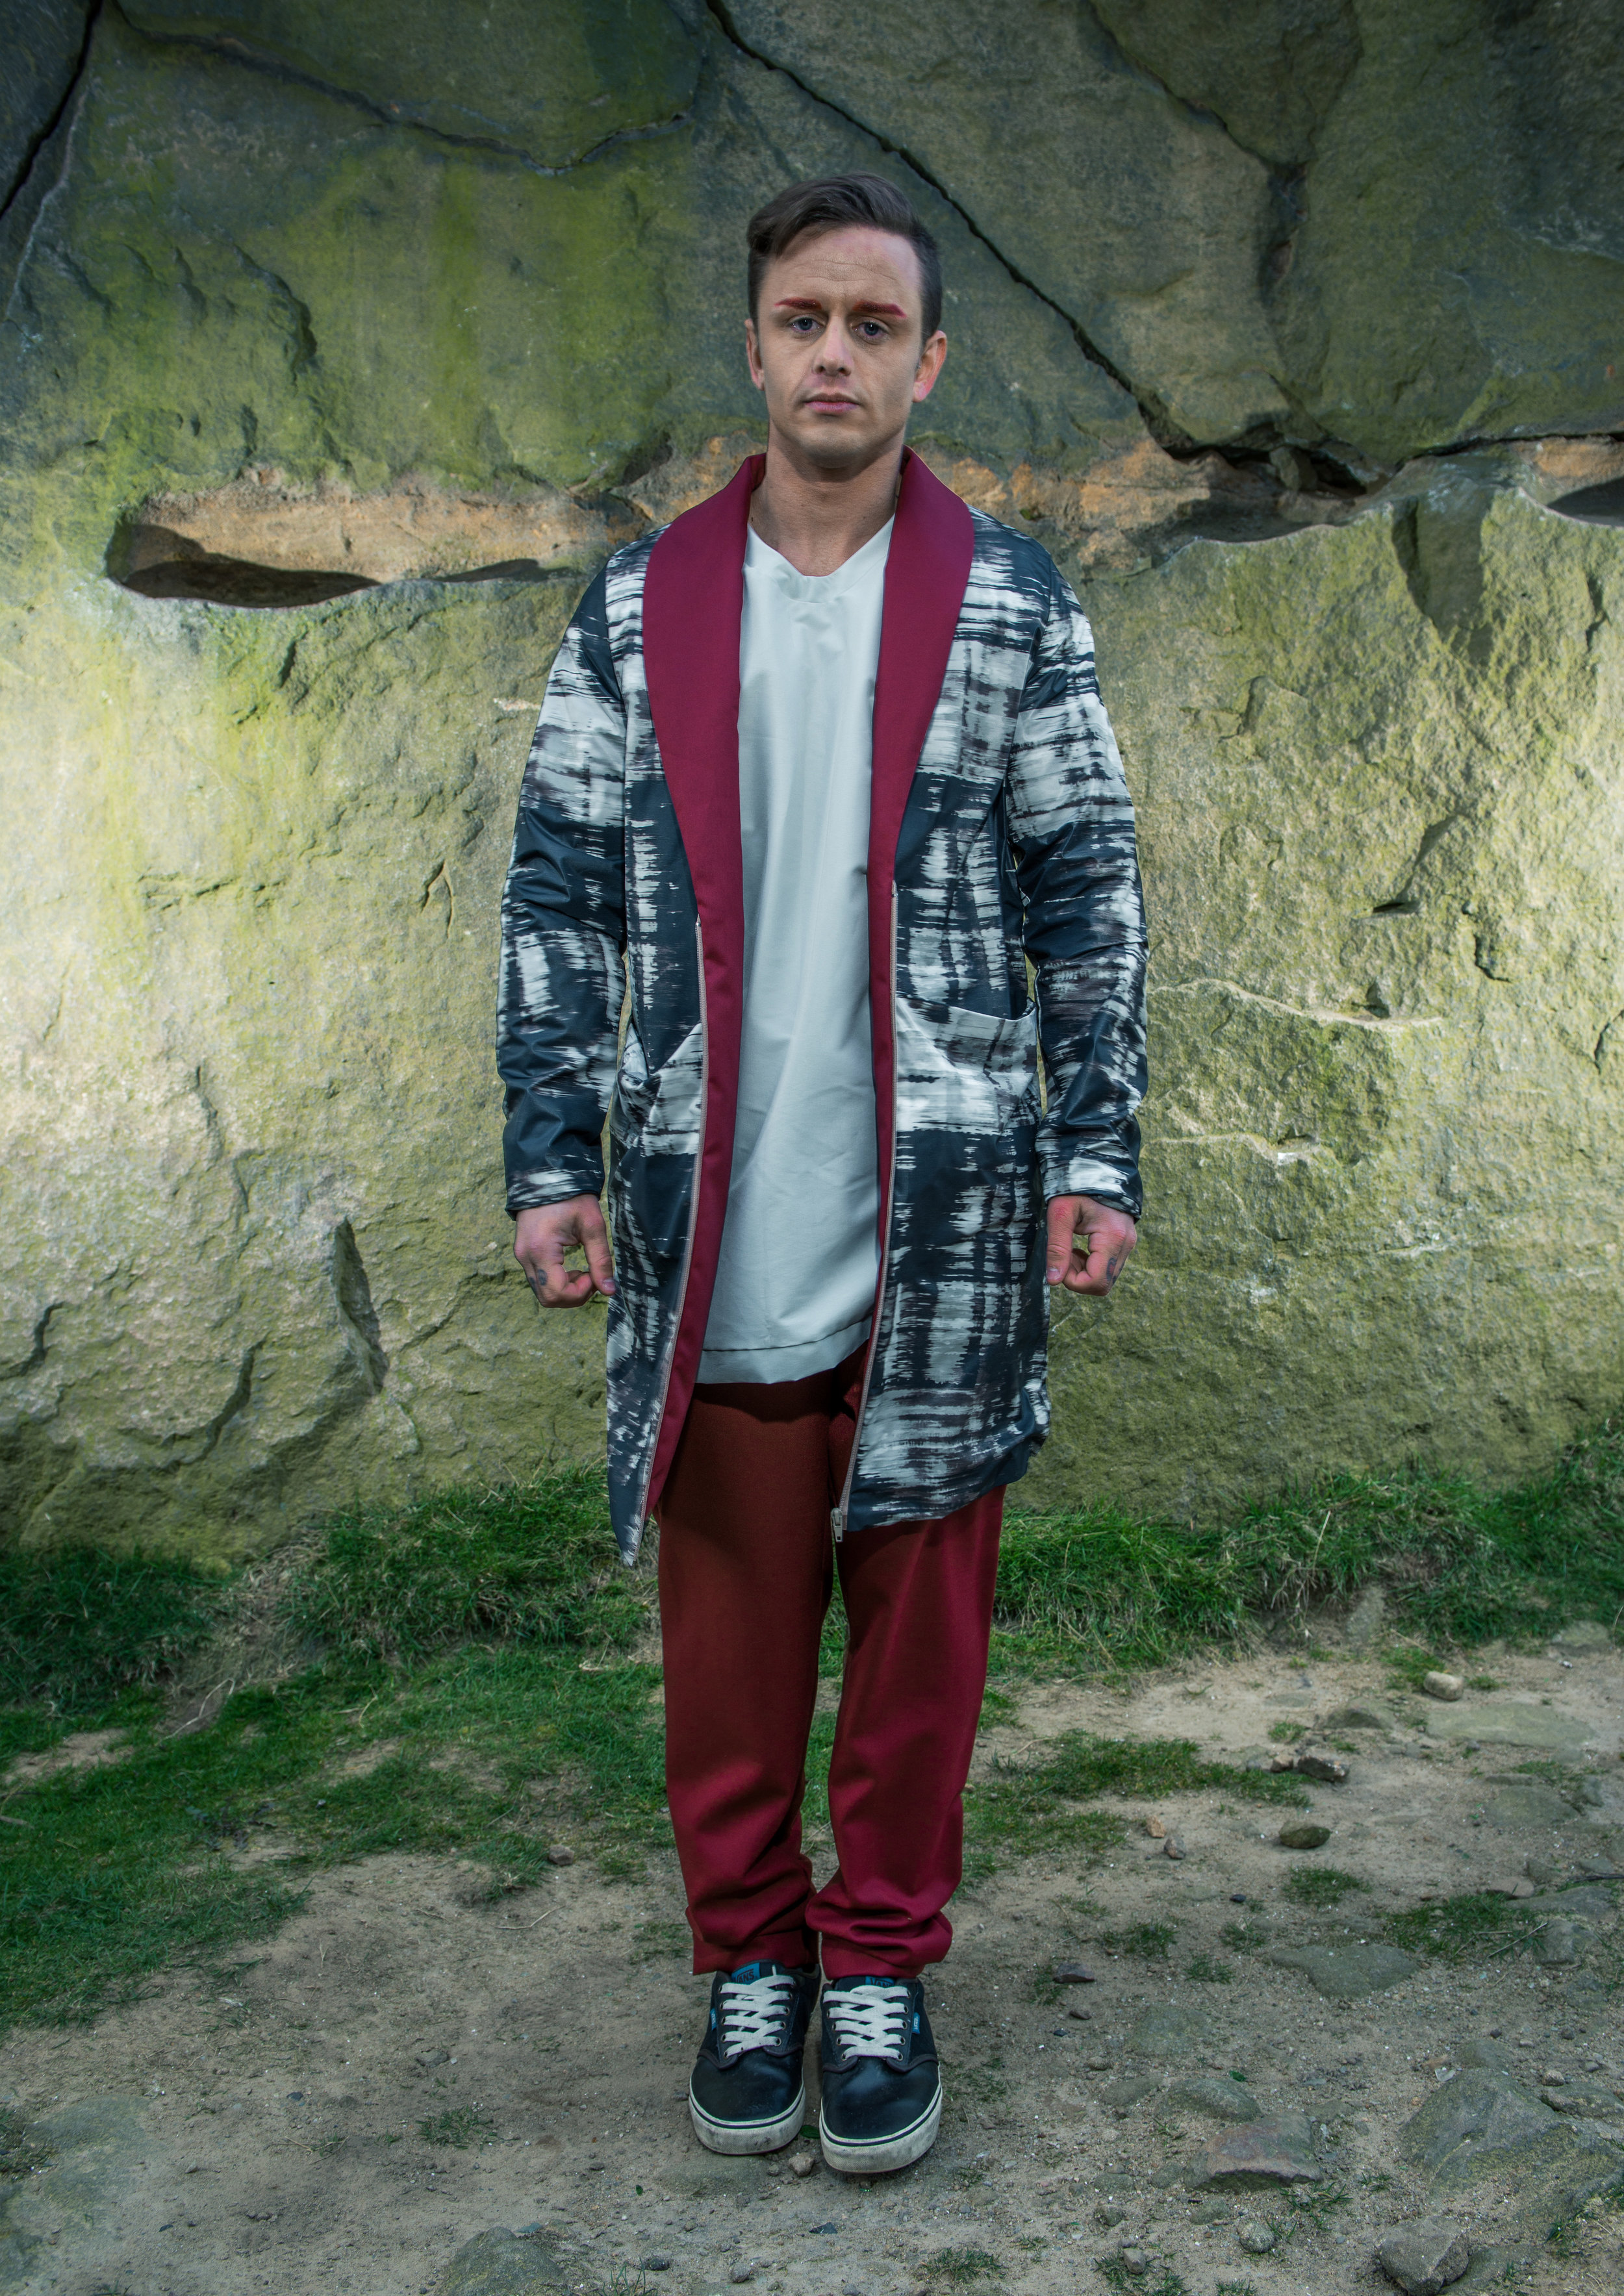 zaramia-ava-zaramiaava-leeds-fashion-designer-ethical-sustainable-tailored-minimalist-denim-red-print-coat-overzied-fitted-jersey-tshirt-top-trousers-versatile-drape-cowl-styling-menswear-models-13